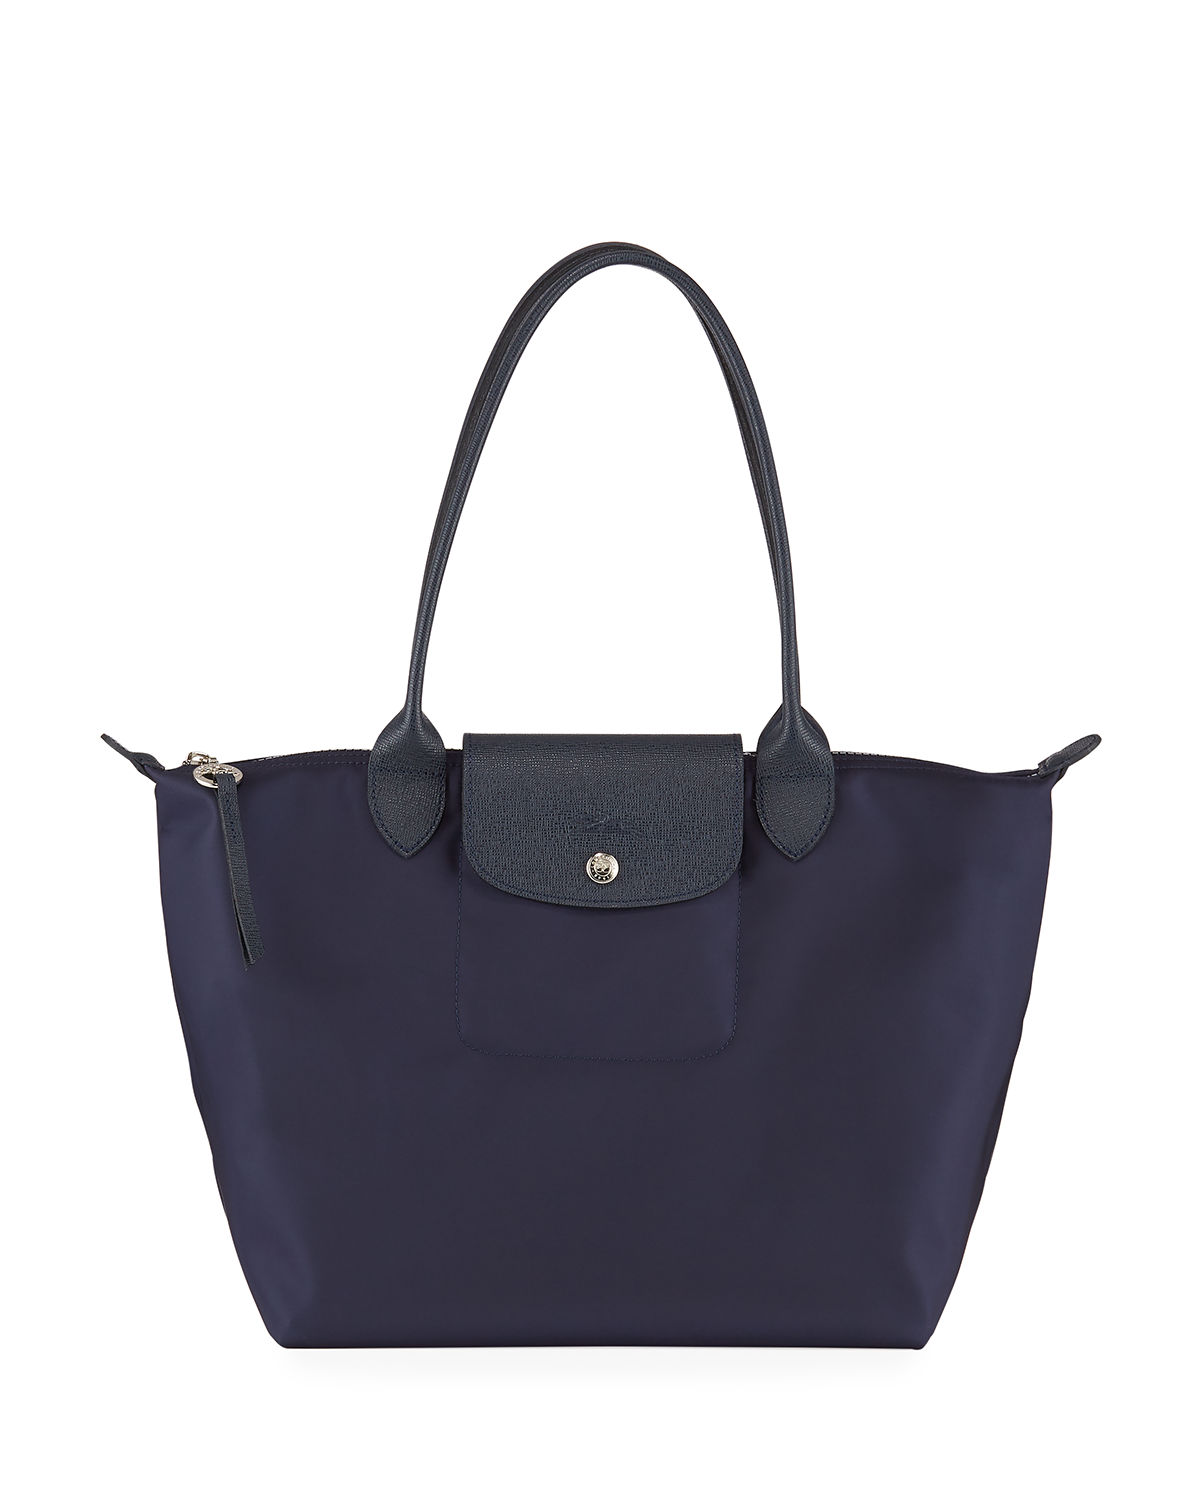 Longchamp Totes LE PLIAGE NEO MEDIUM NYLON SHOULDER TOTE BAG